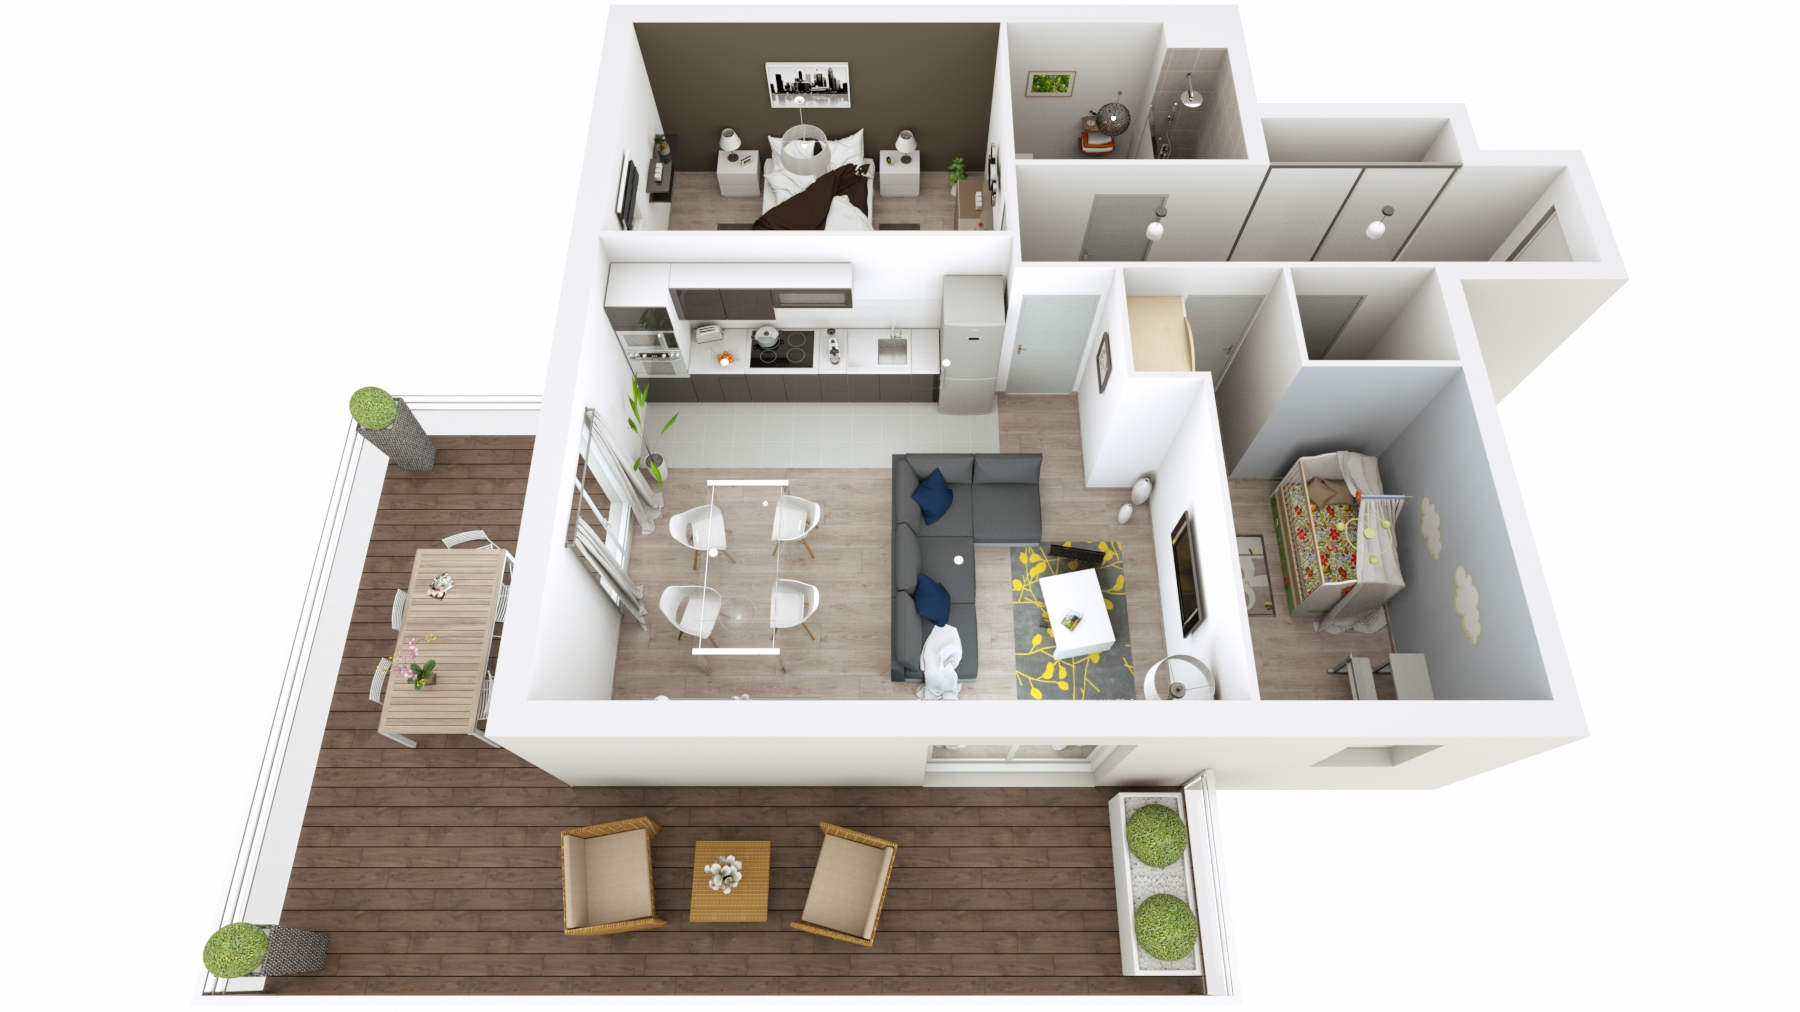 application to renevate floor plans